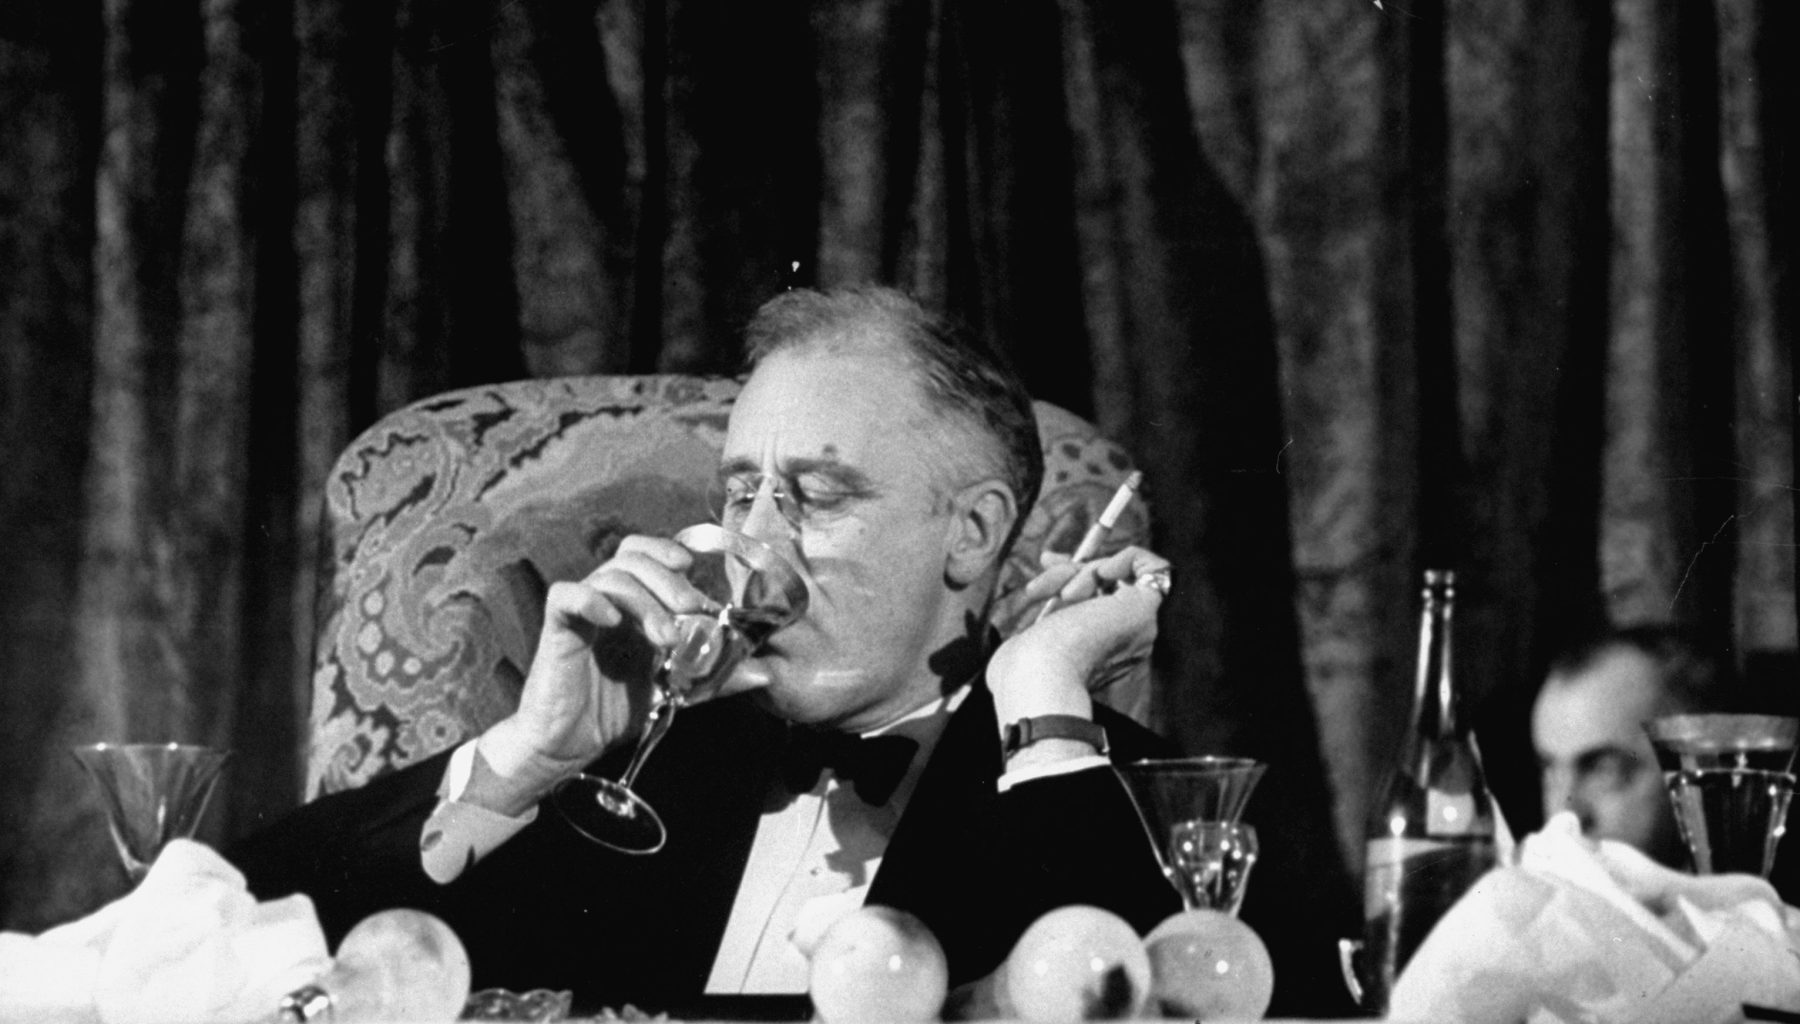 Pres. Franklin Roosevelt drinking white wine as he listens to Speaker Bankhead Jackson Day dinner speech during a Democratic fundraiser. FDR won four presidential elections. (Thomas D. Mcavoy/The LIFE Picture Collection/Getty Images)